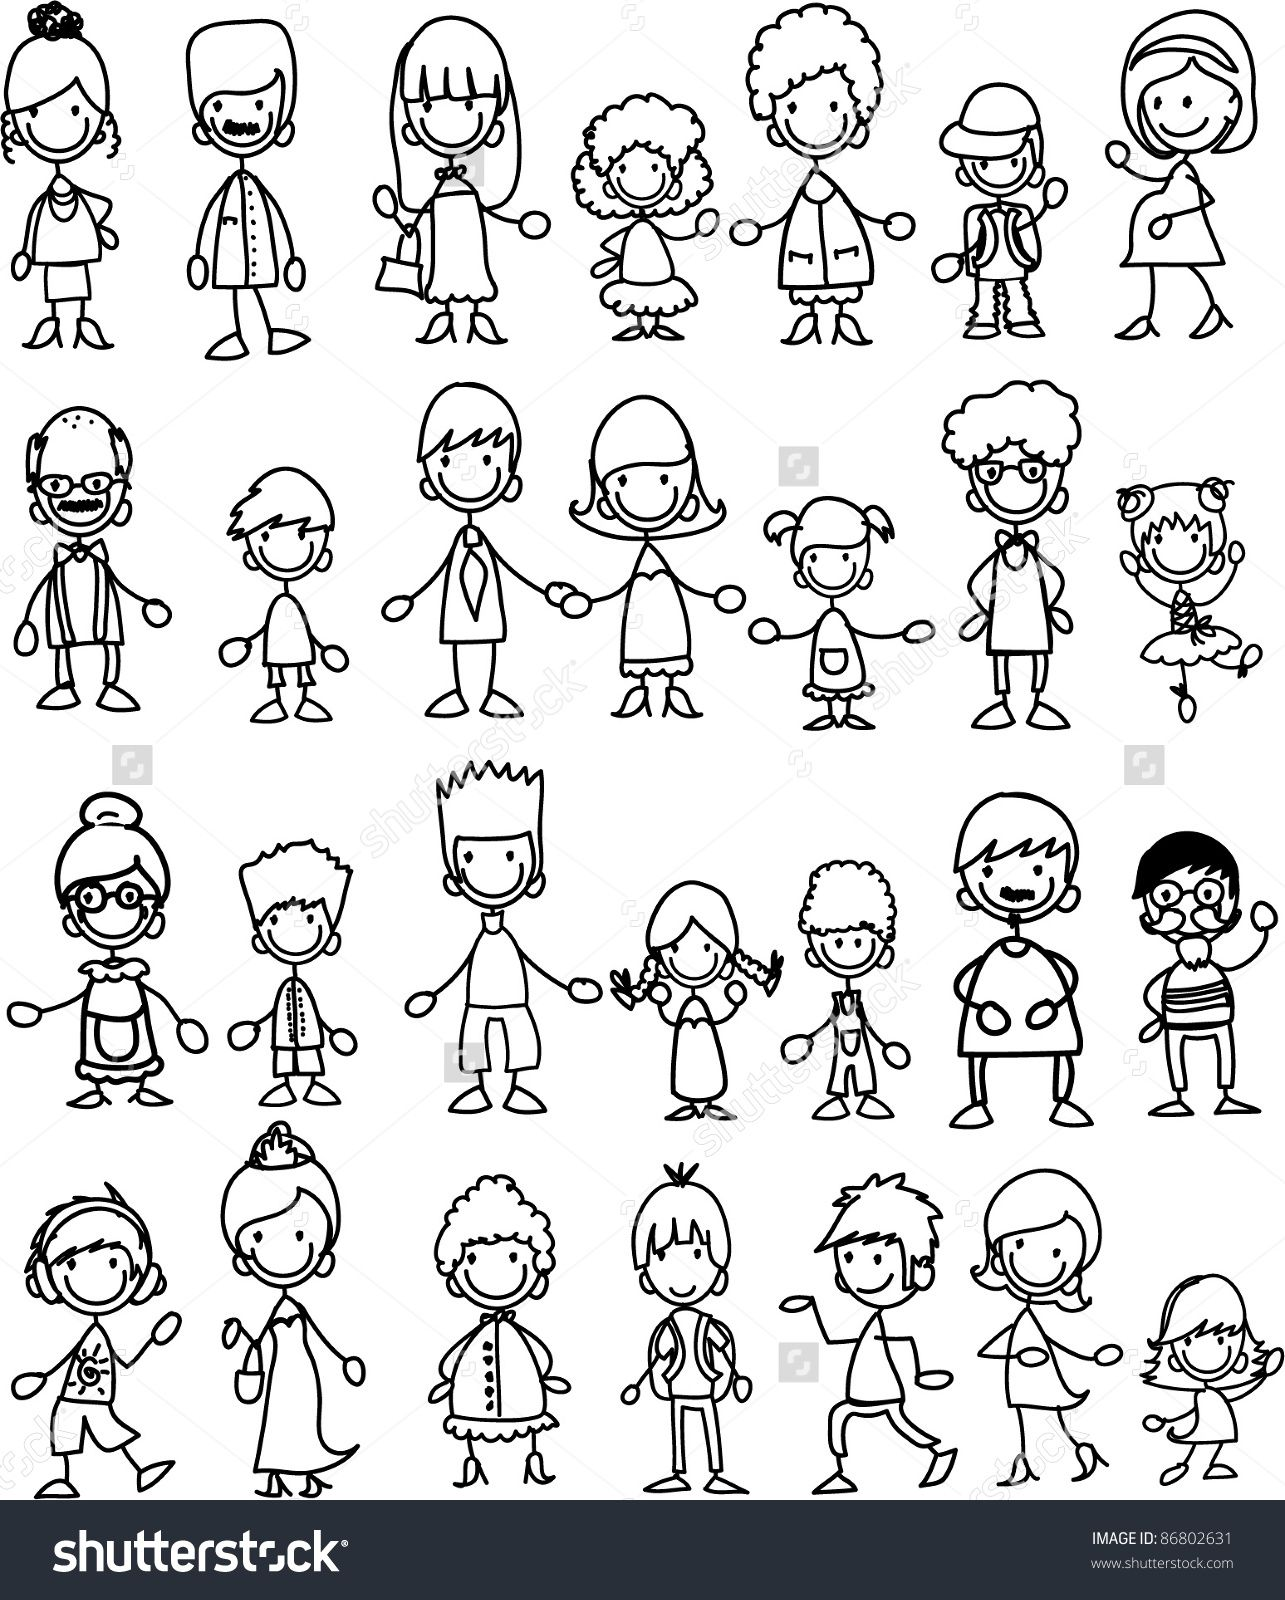 Kids Stock A Wide Selection Of Luxury Premium Cotton: Doodle Members Of Large Families Stock Vector Illustration